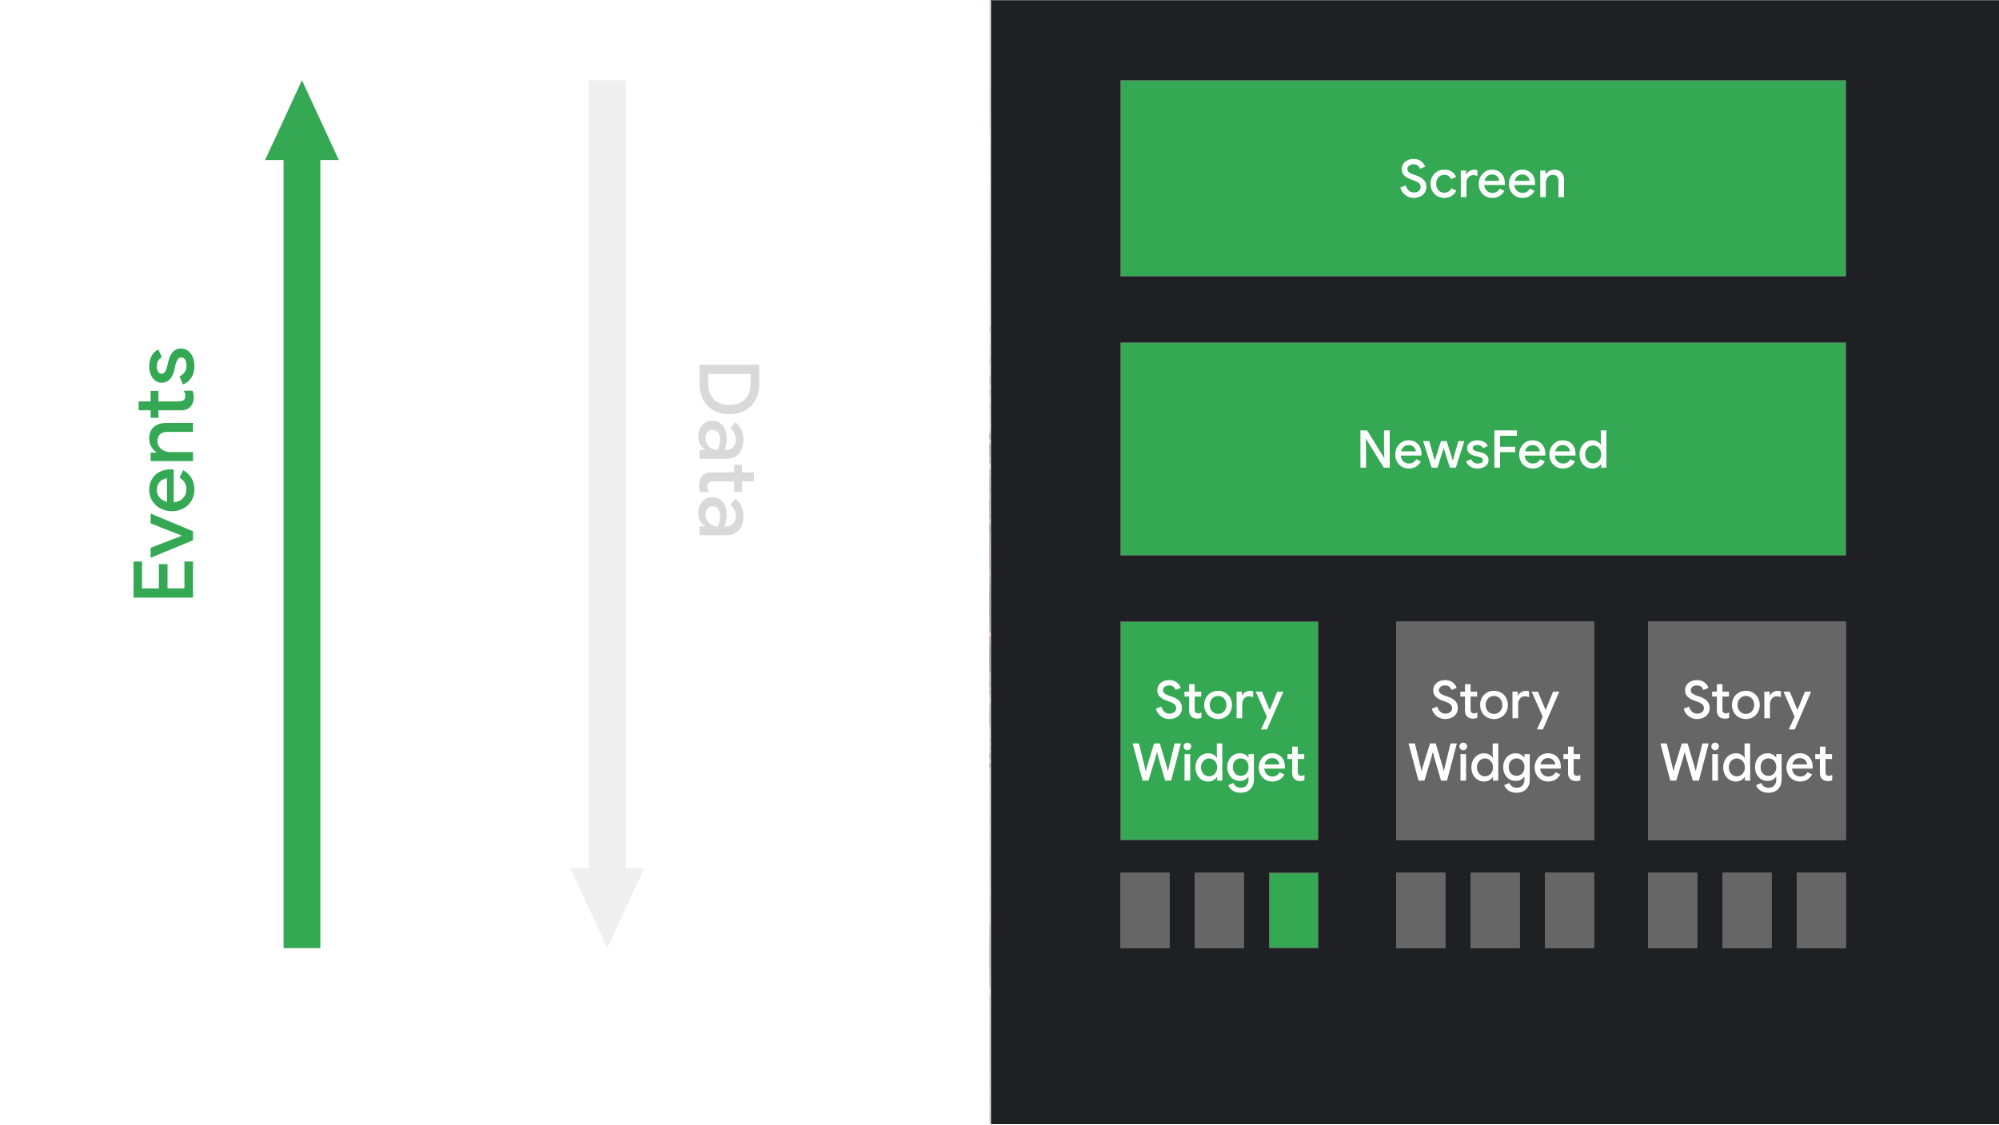 Illustration of how UI elements respond to interaction, by triggering events that are handled by the app logic.